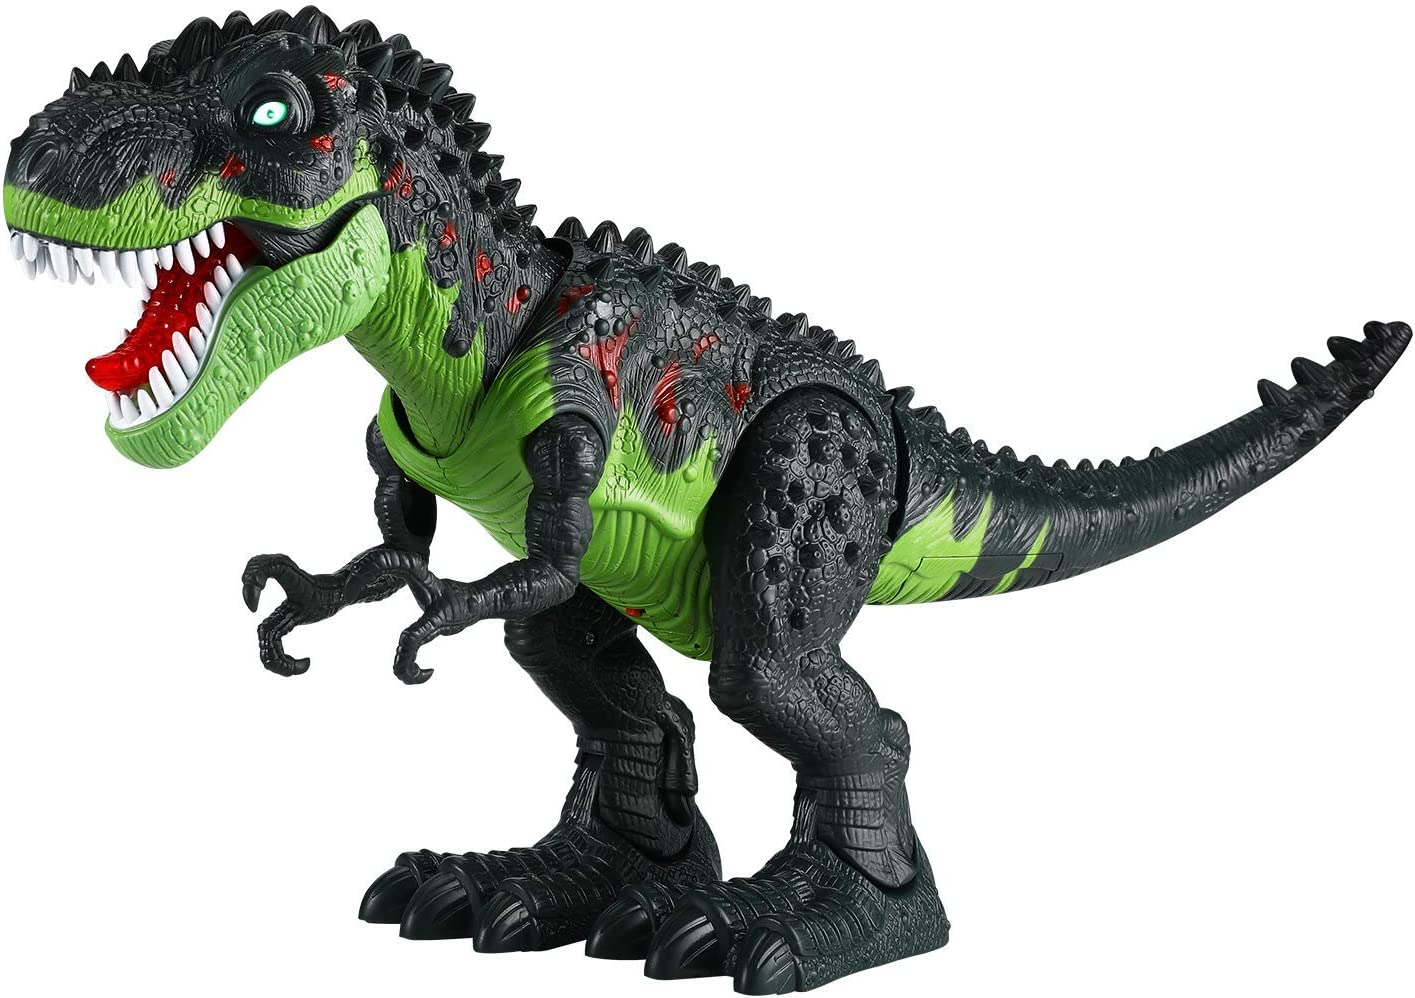 Amazon Com Tuko Jurassic World Dinosaur Toys Led Light Up Walking And Roaring Realistic T Rex Dinosaur Toys For 3 12 Years Old Boys And Girls Dino Toys Games Shop the top 25 most popular 1 at the best prices! tuko jurassic world dinosaur toys led light up walking and roaring realistic t rex dinosaur toys for 3 12 years old boys and girls dino